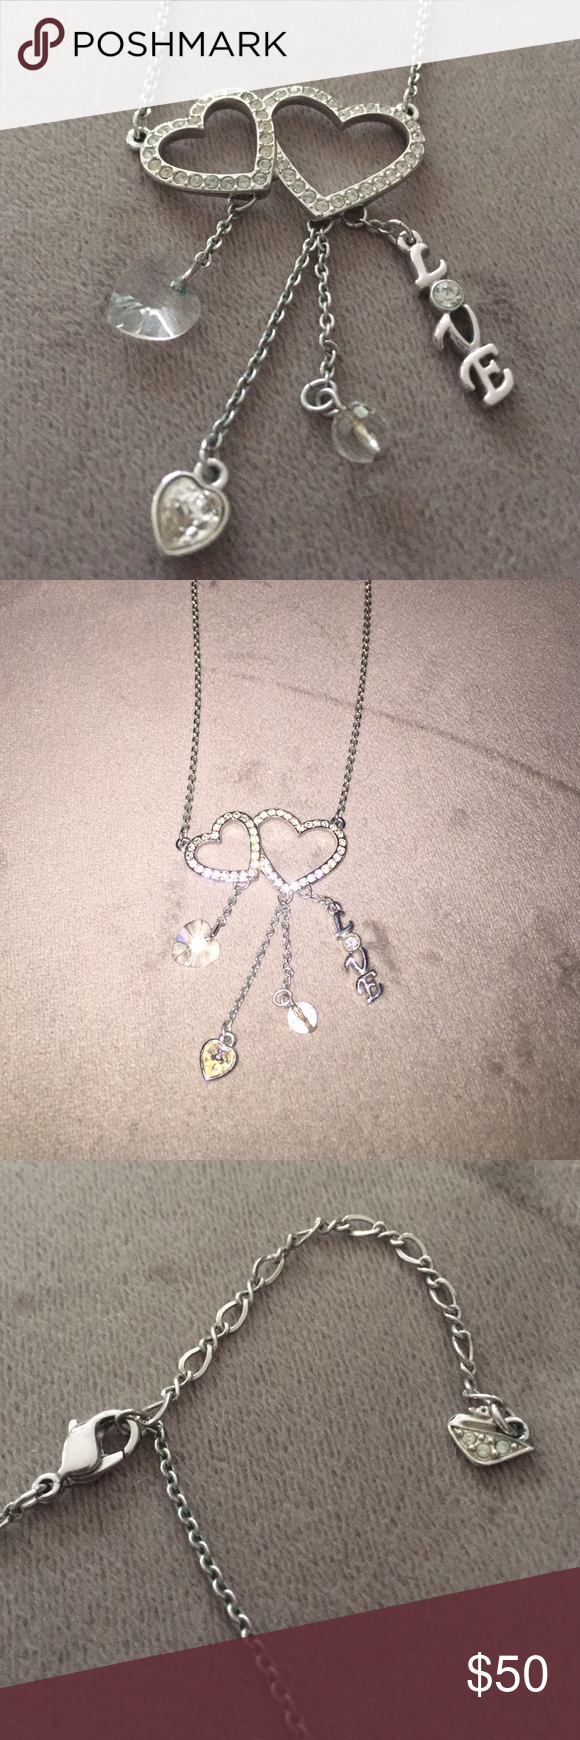 Swarovski Necklace Swarovski necklace. Two open hearts with four floatinf charms. No stones are missing. Excellent condition. Adjustable clasp. 100% authentic. Swarovski Jewelry Necklaces